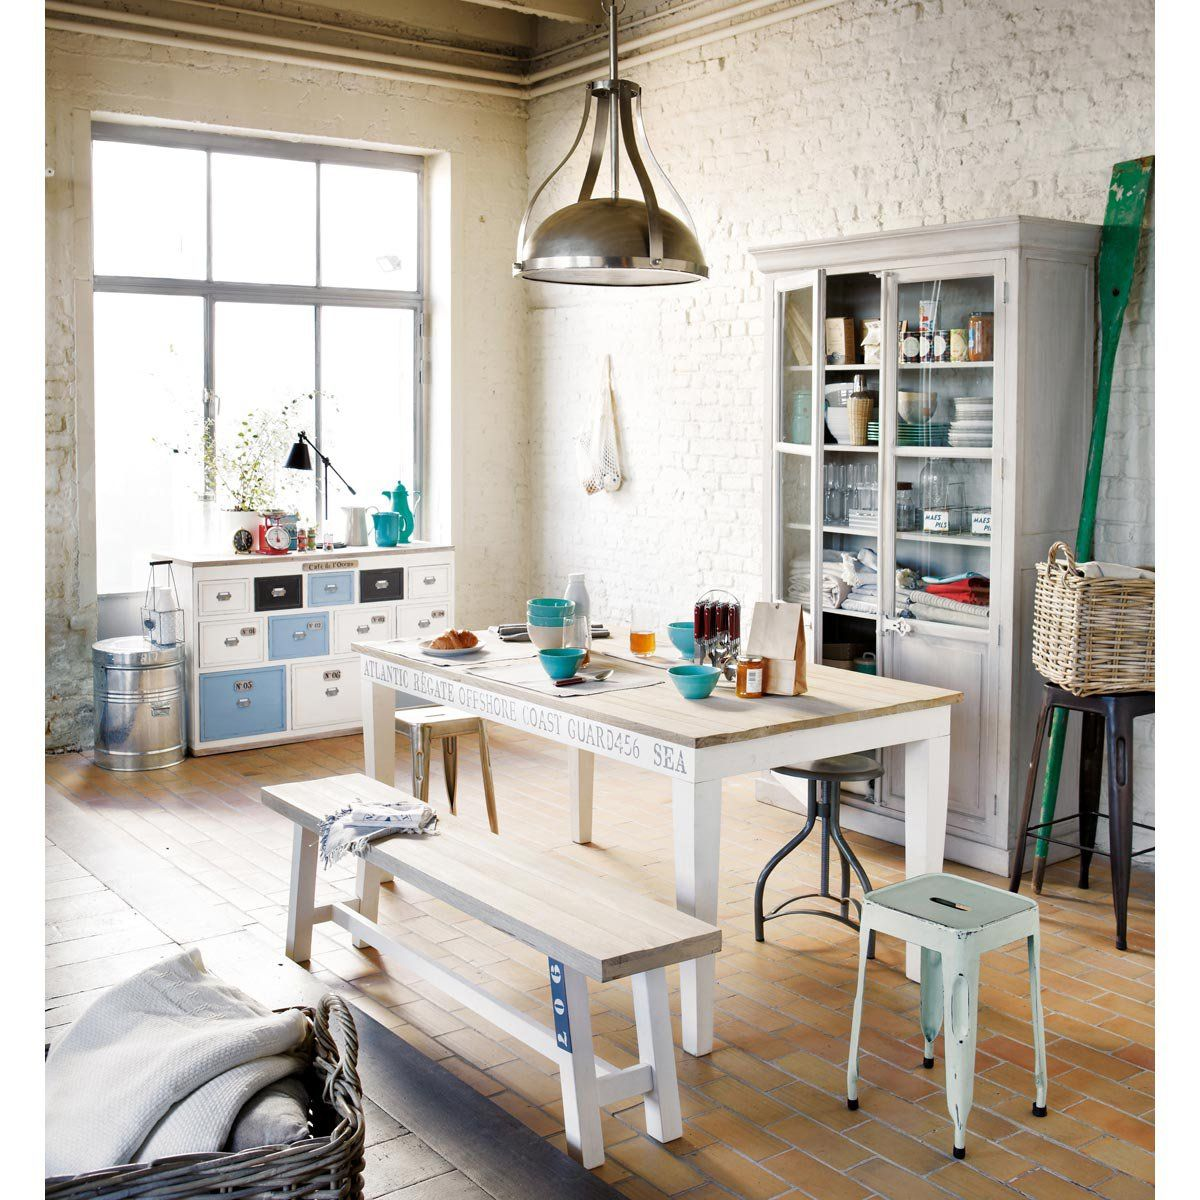 Table Et Banc Peints En Blanc Maisons Du Monde Mesas De  # Banc De Table Blanc